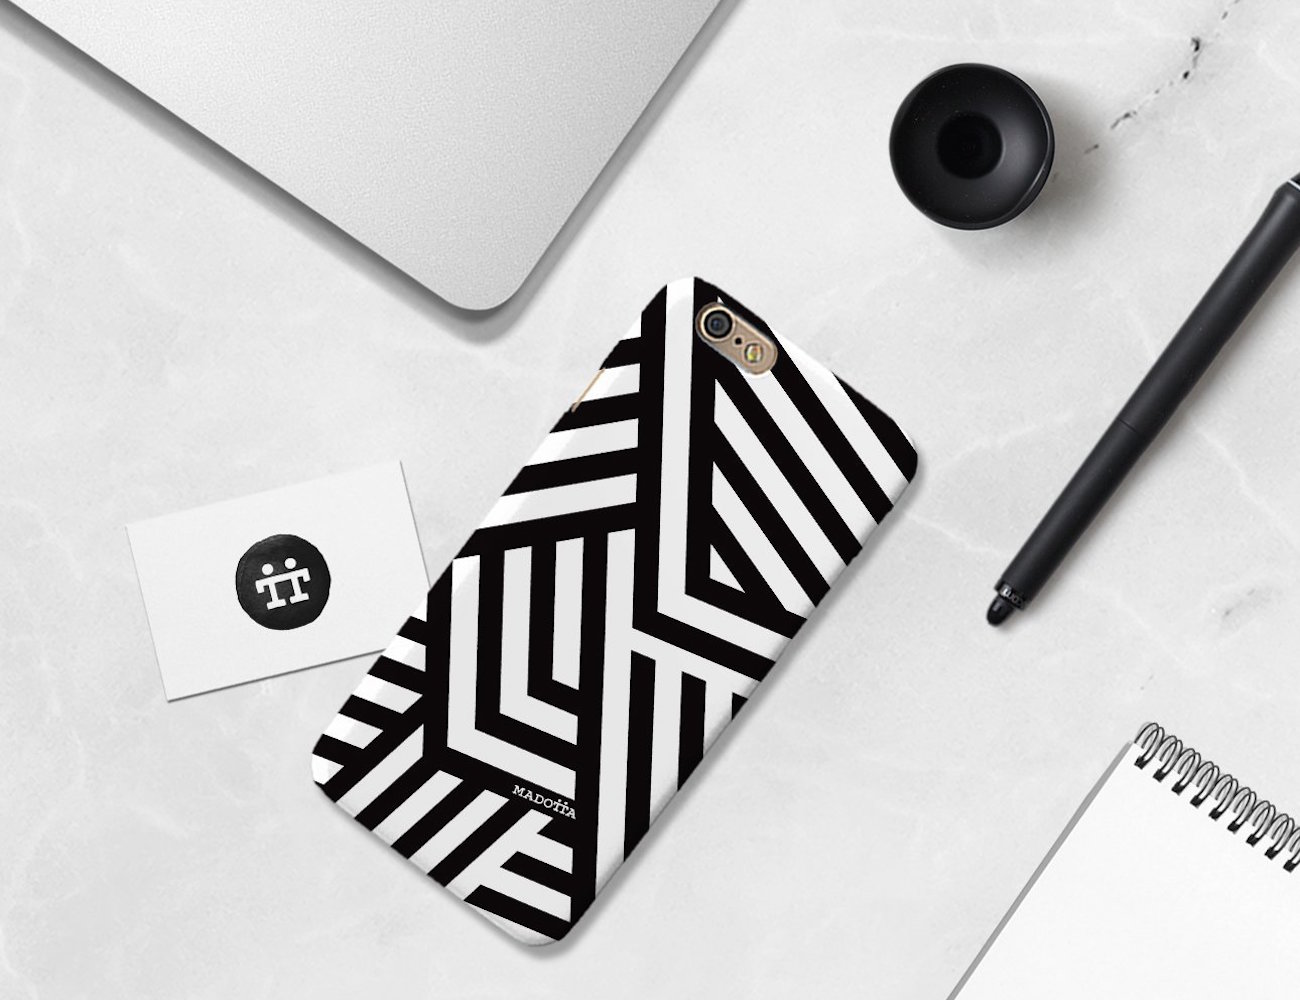 Dazzle+Camouflage+Phone+Case+By+Madotta